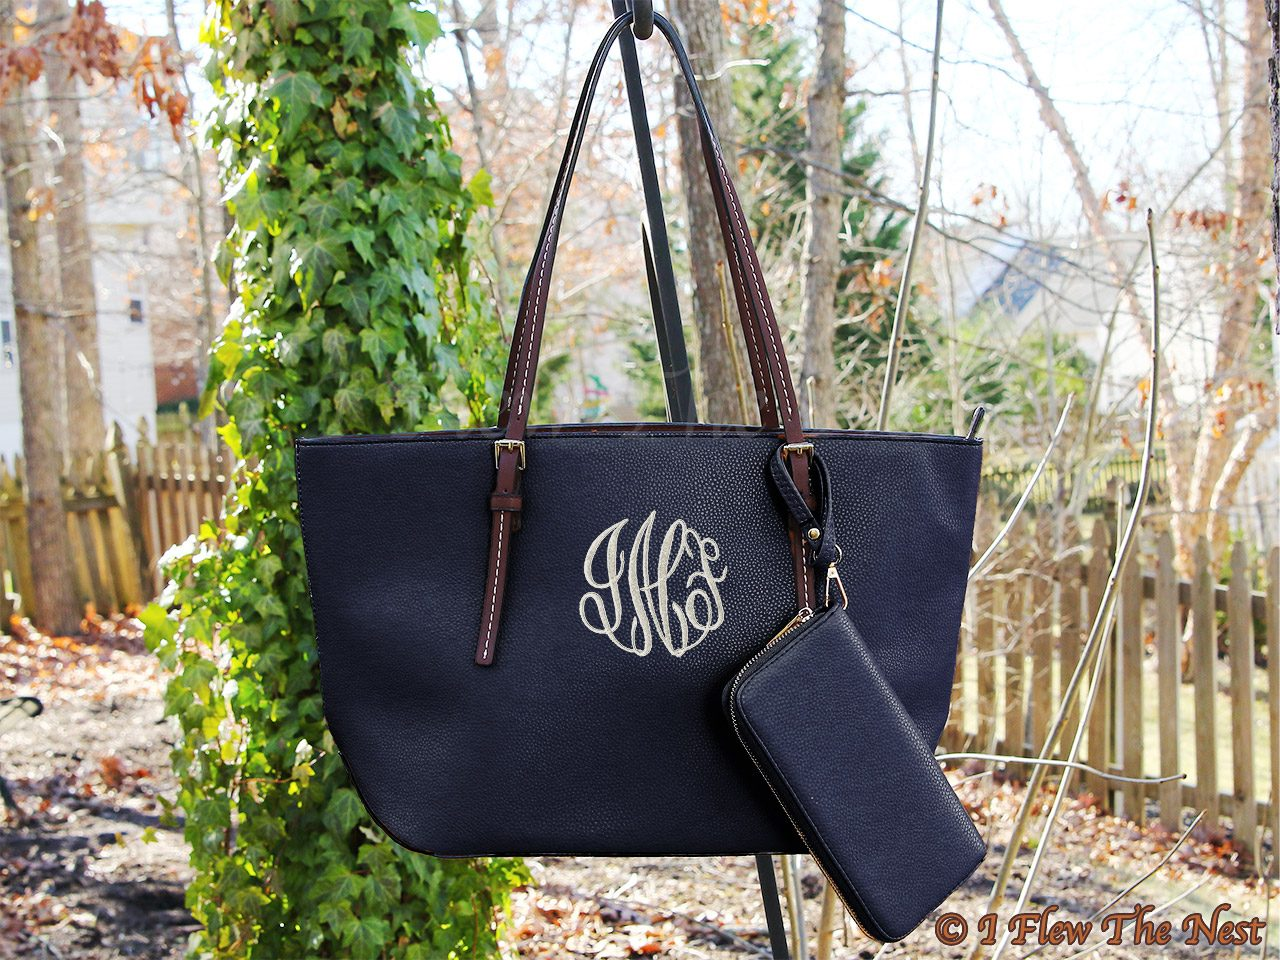 461b8a97c1c8e Caronline monogrammed purse with Wallet